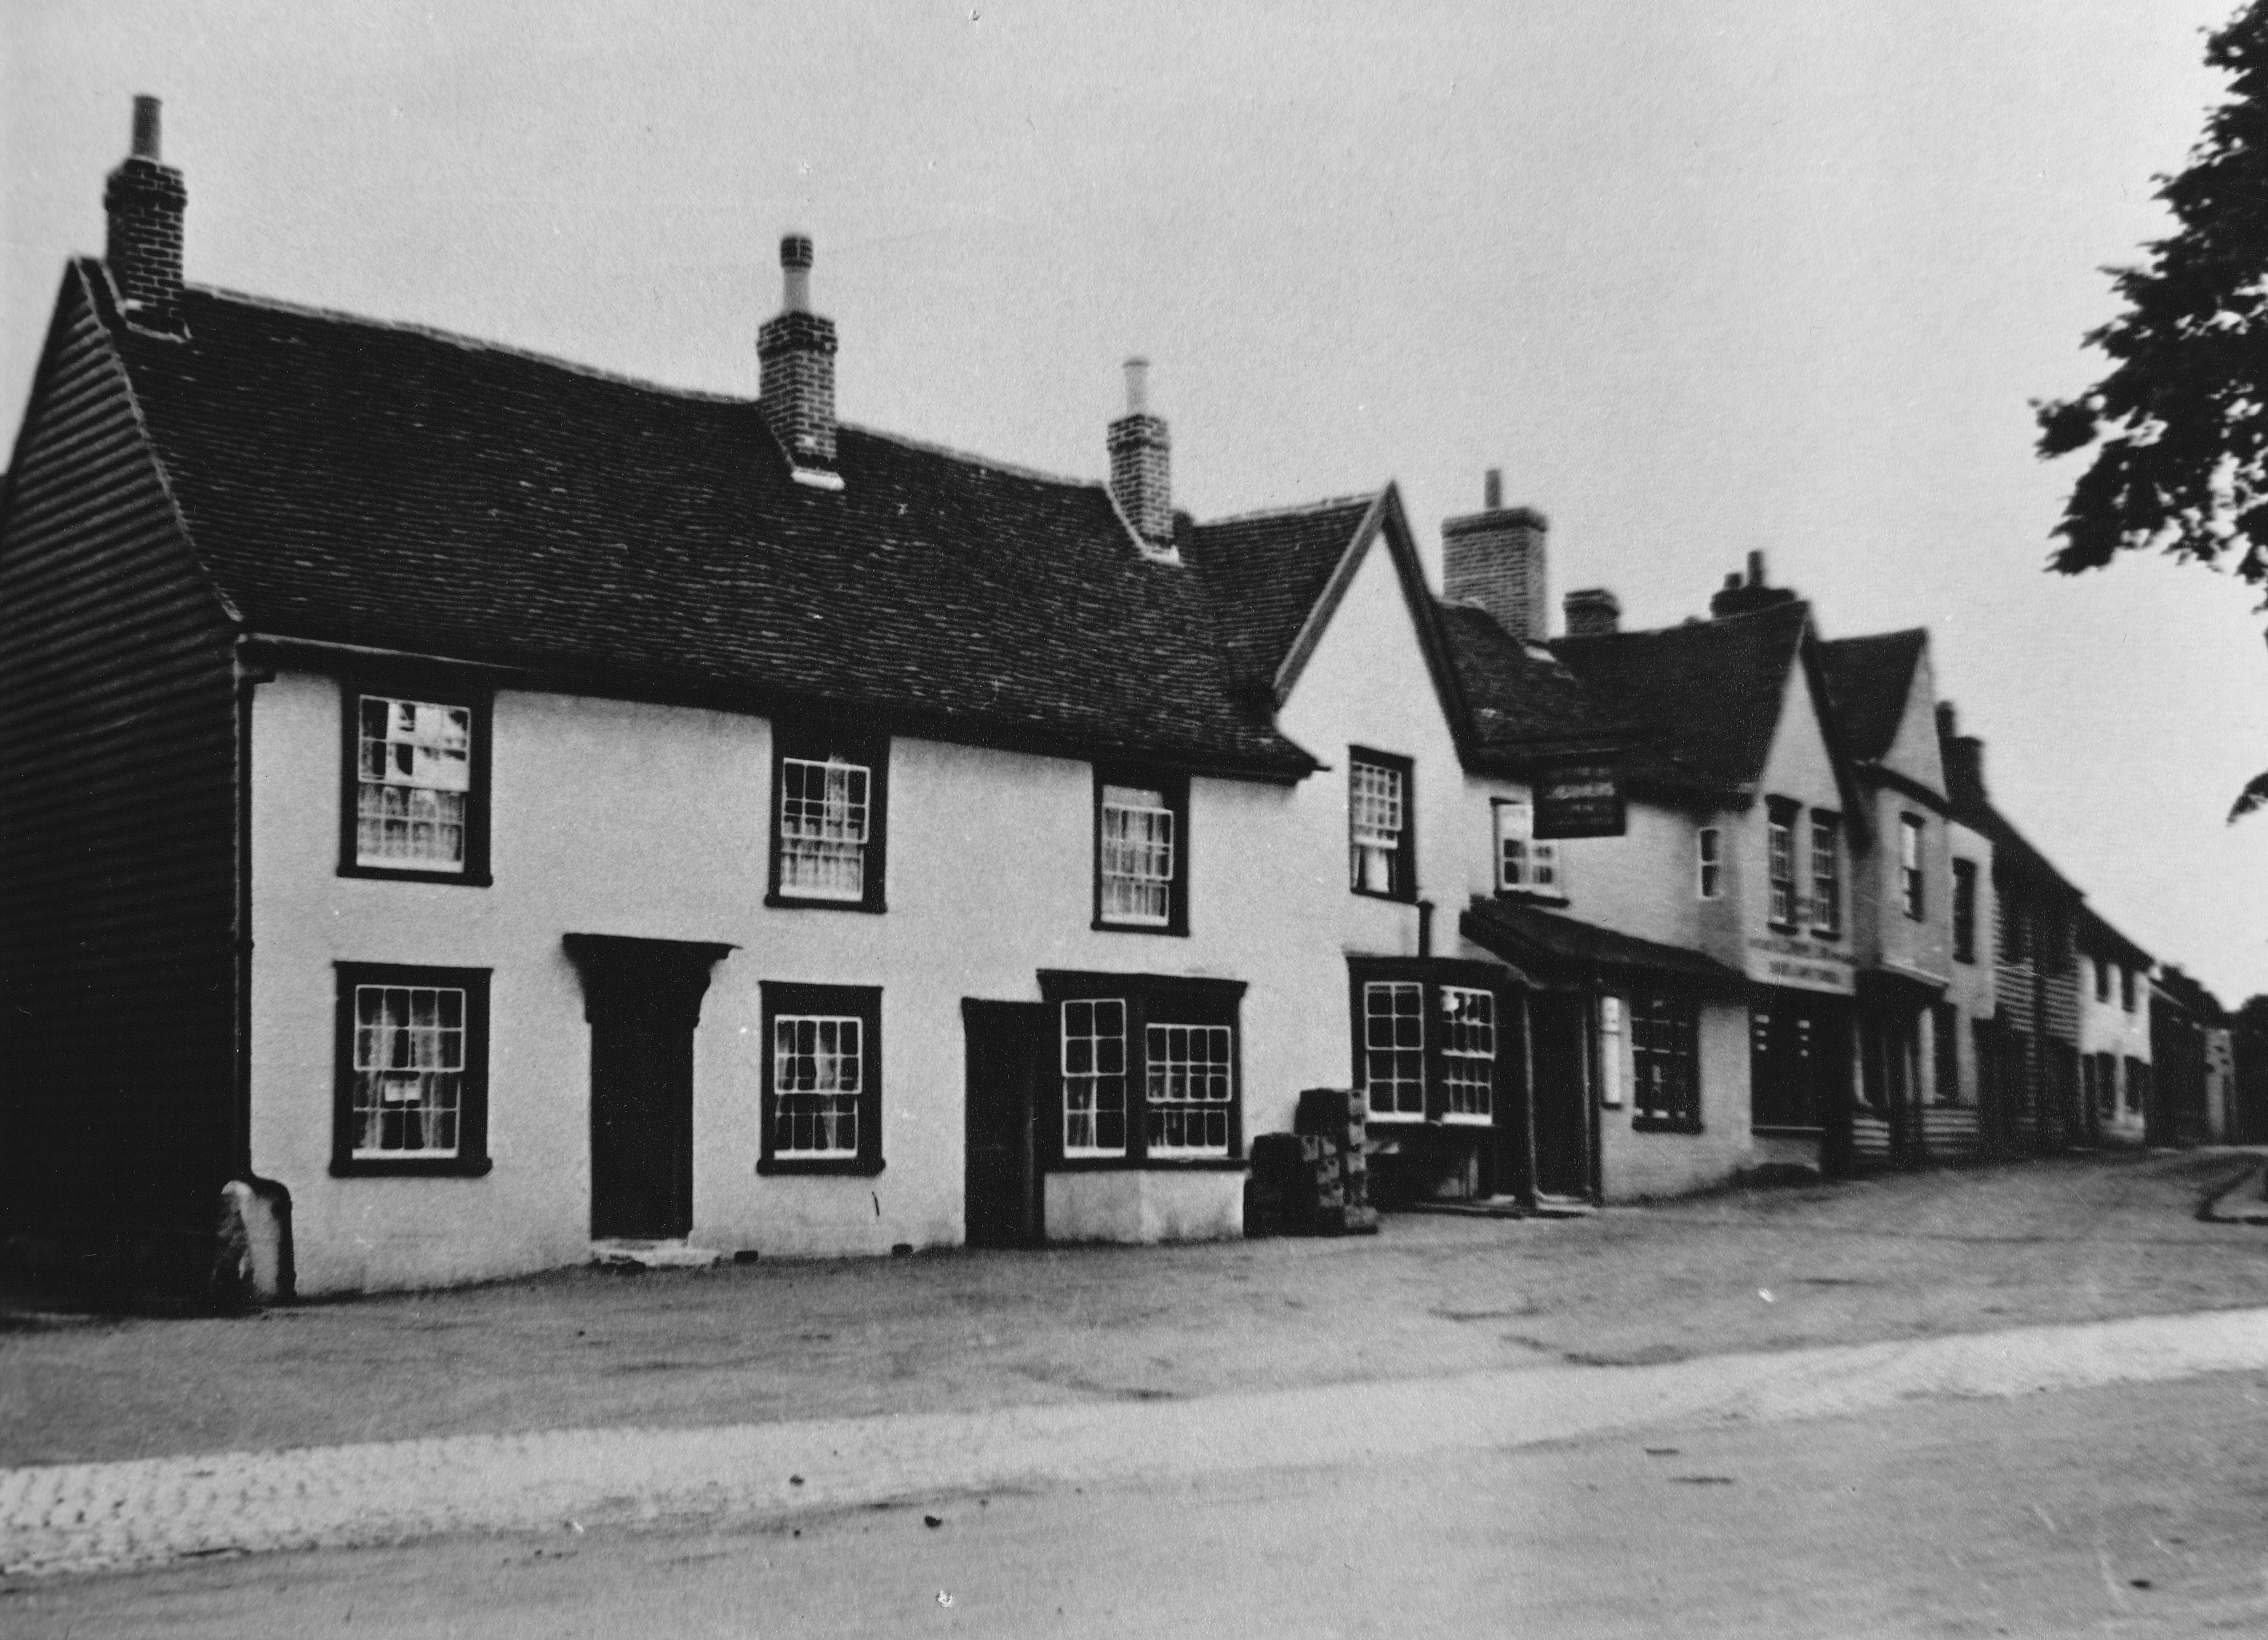 Older photo of the Chequers